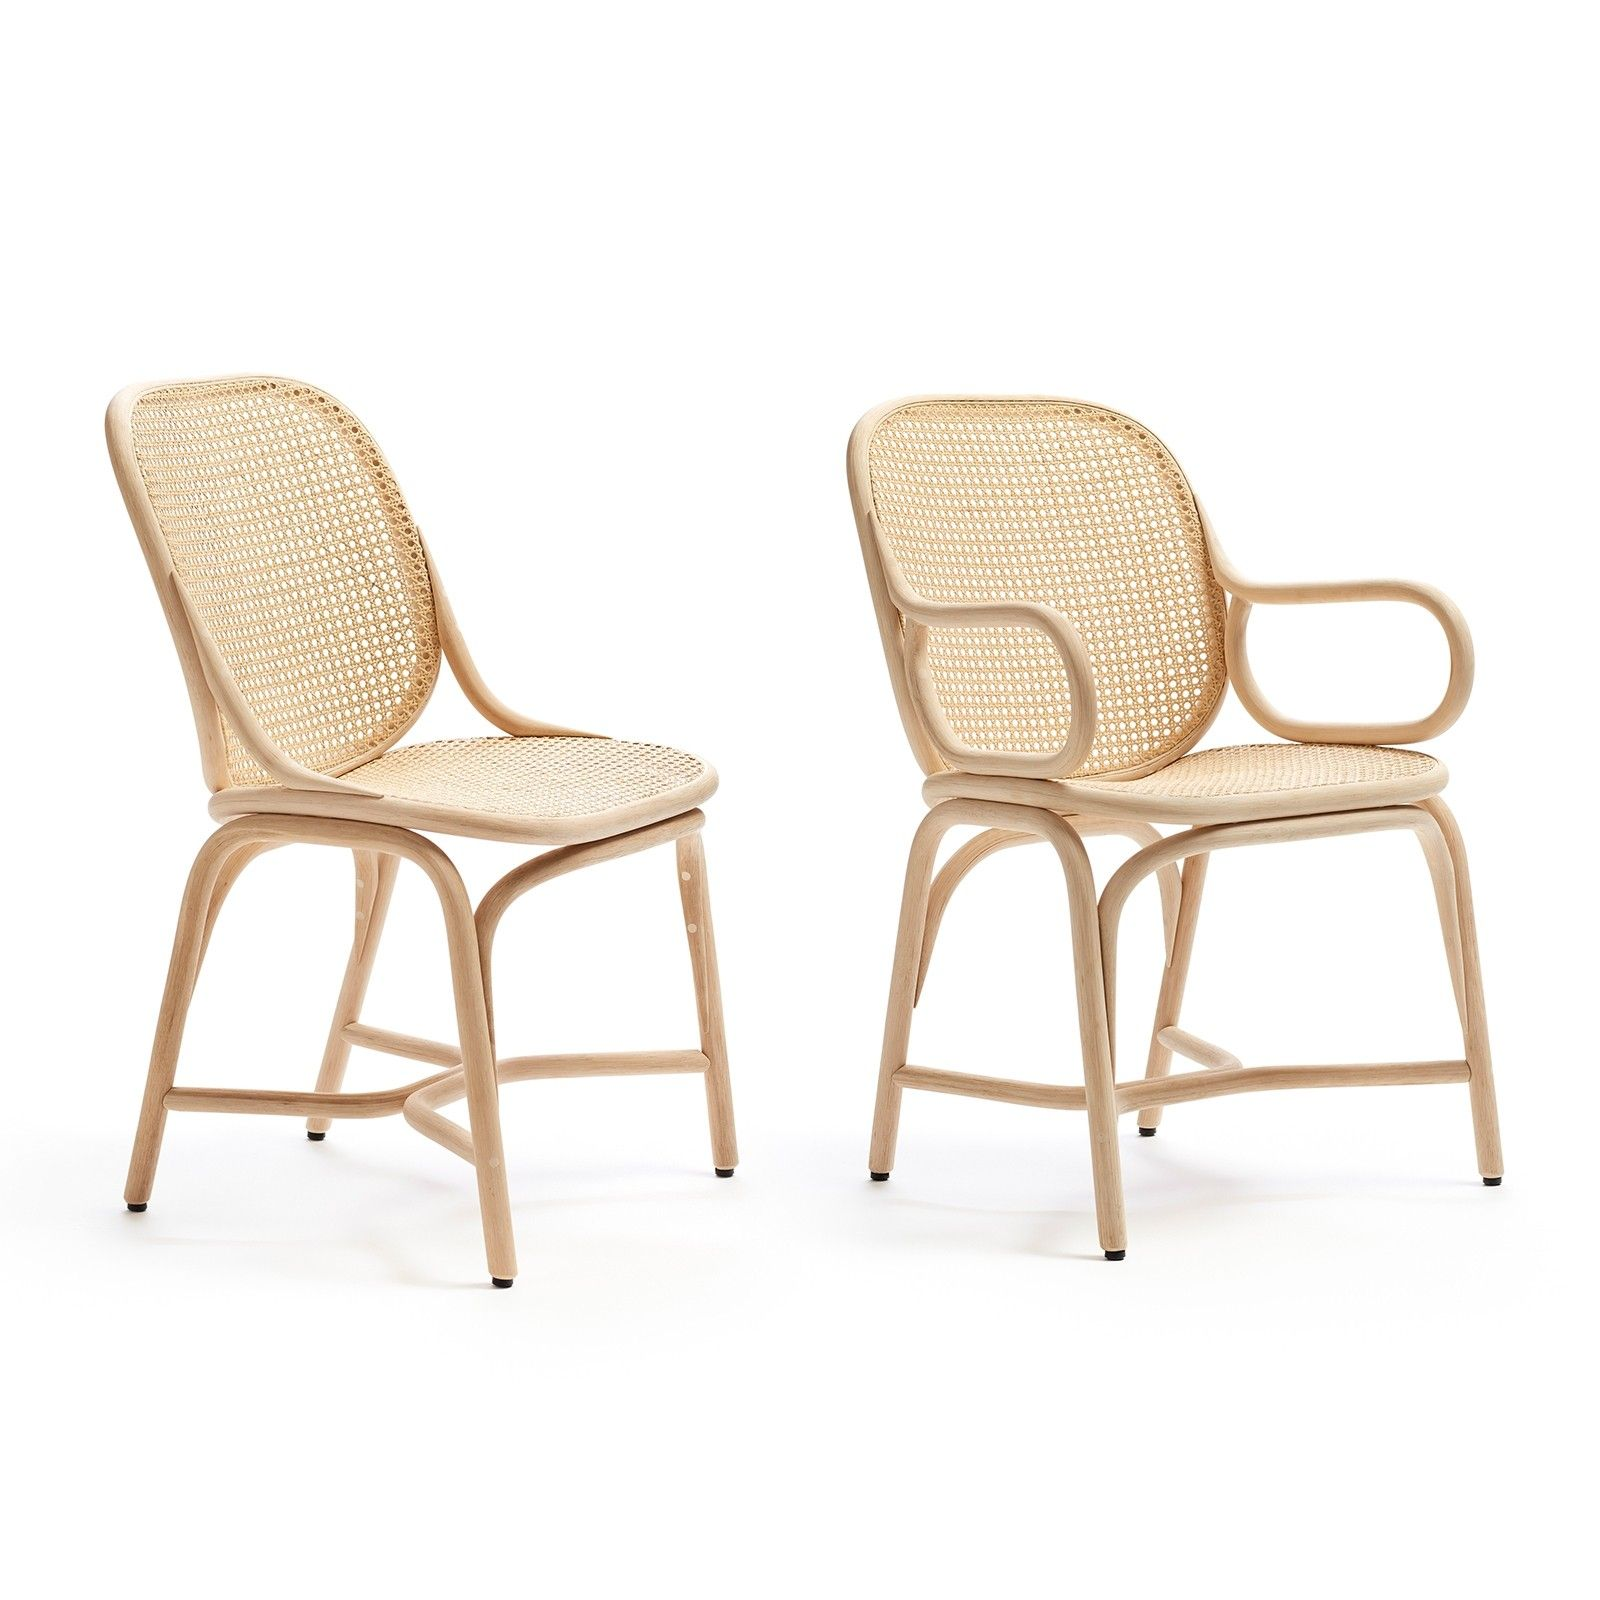 The Frames collection which includes a dining chair